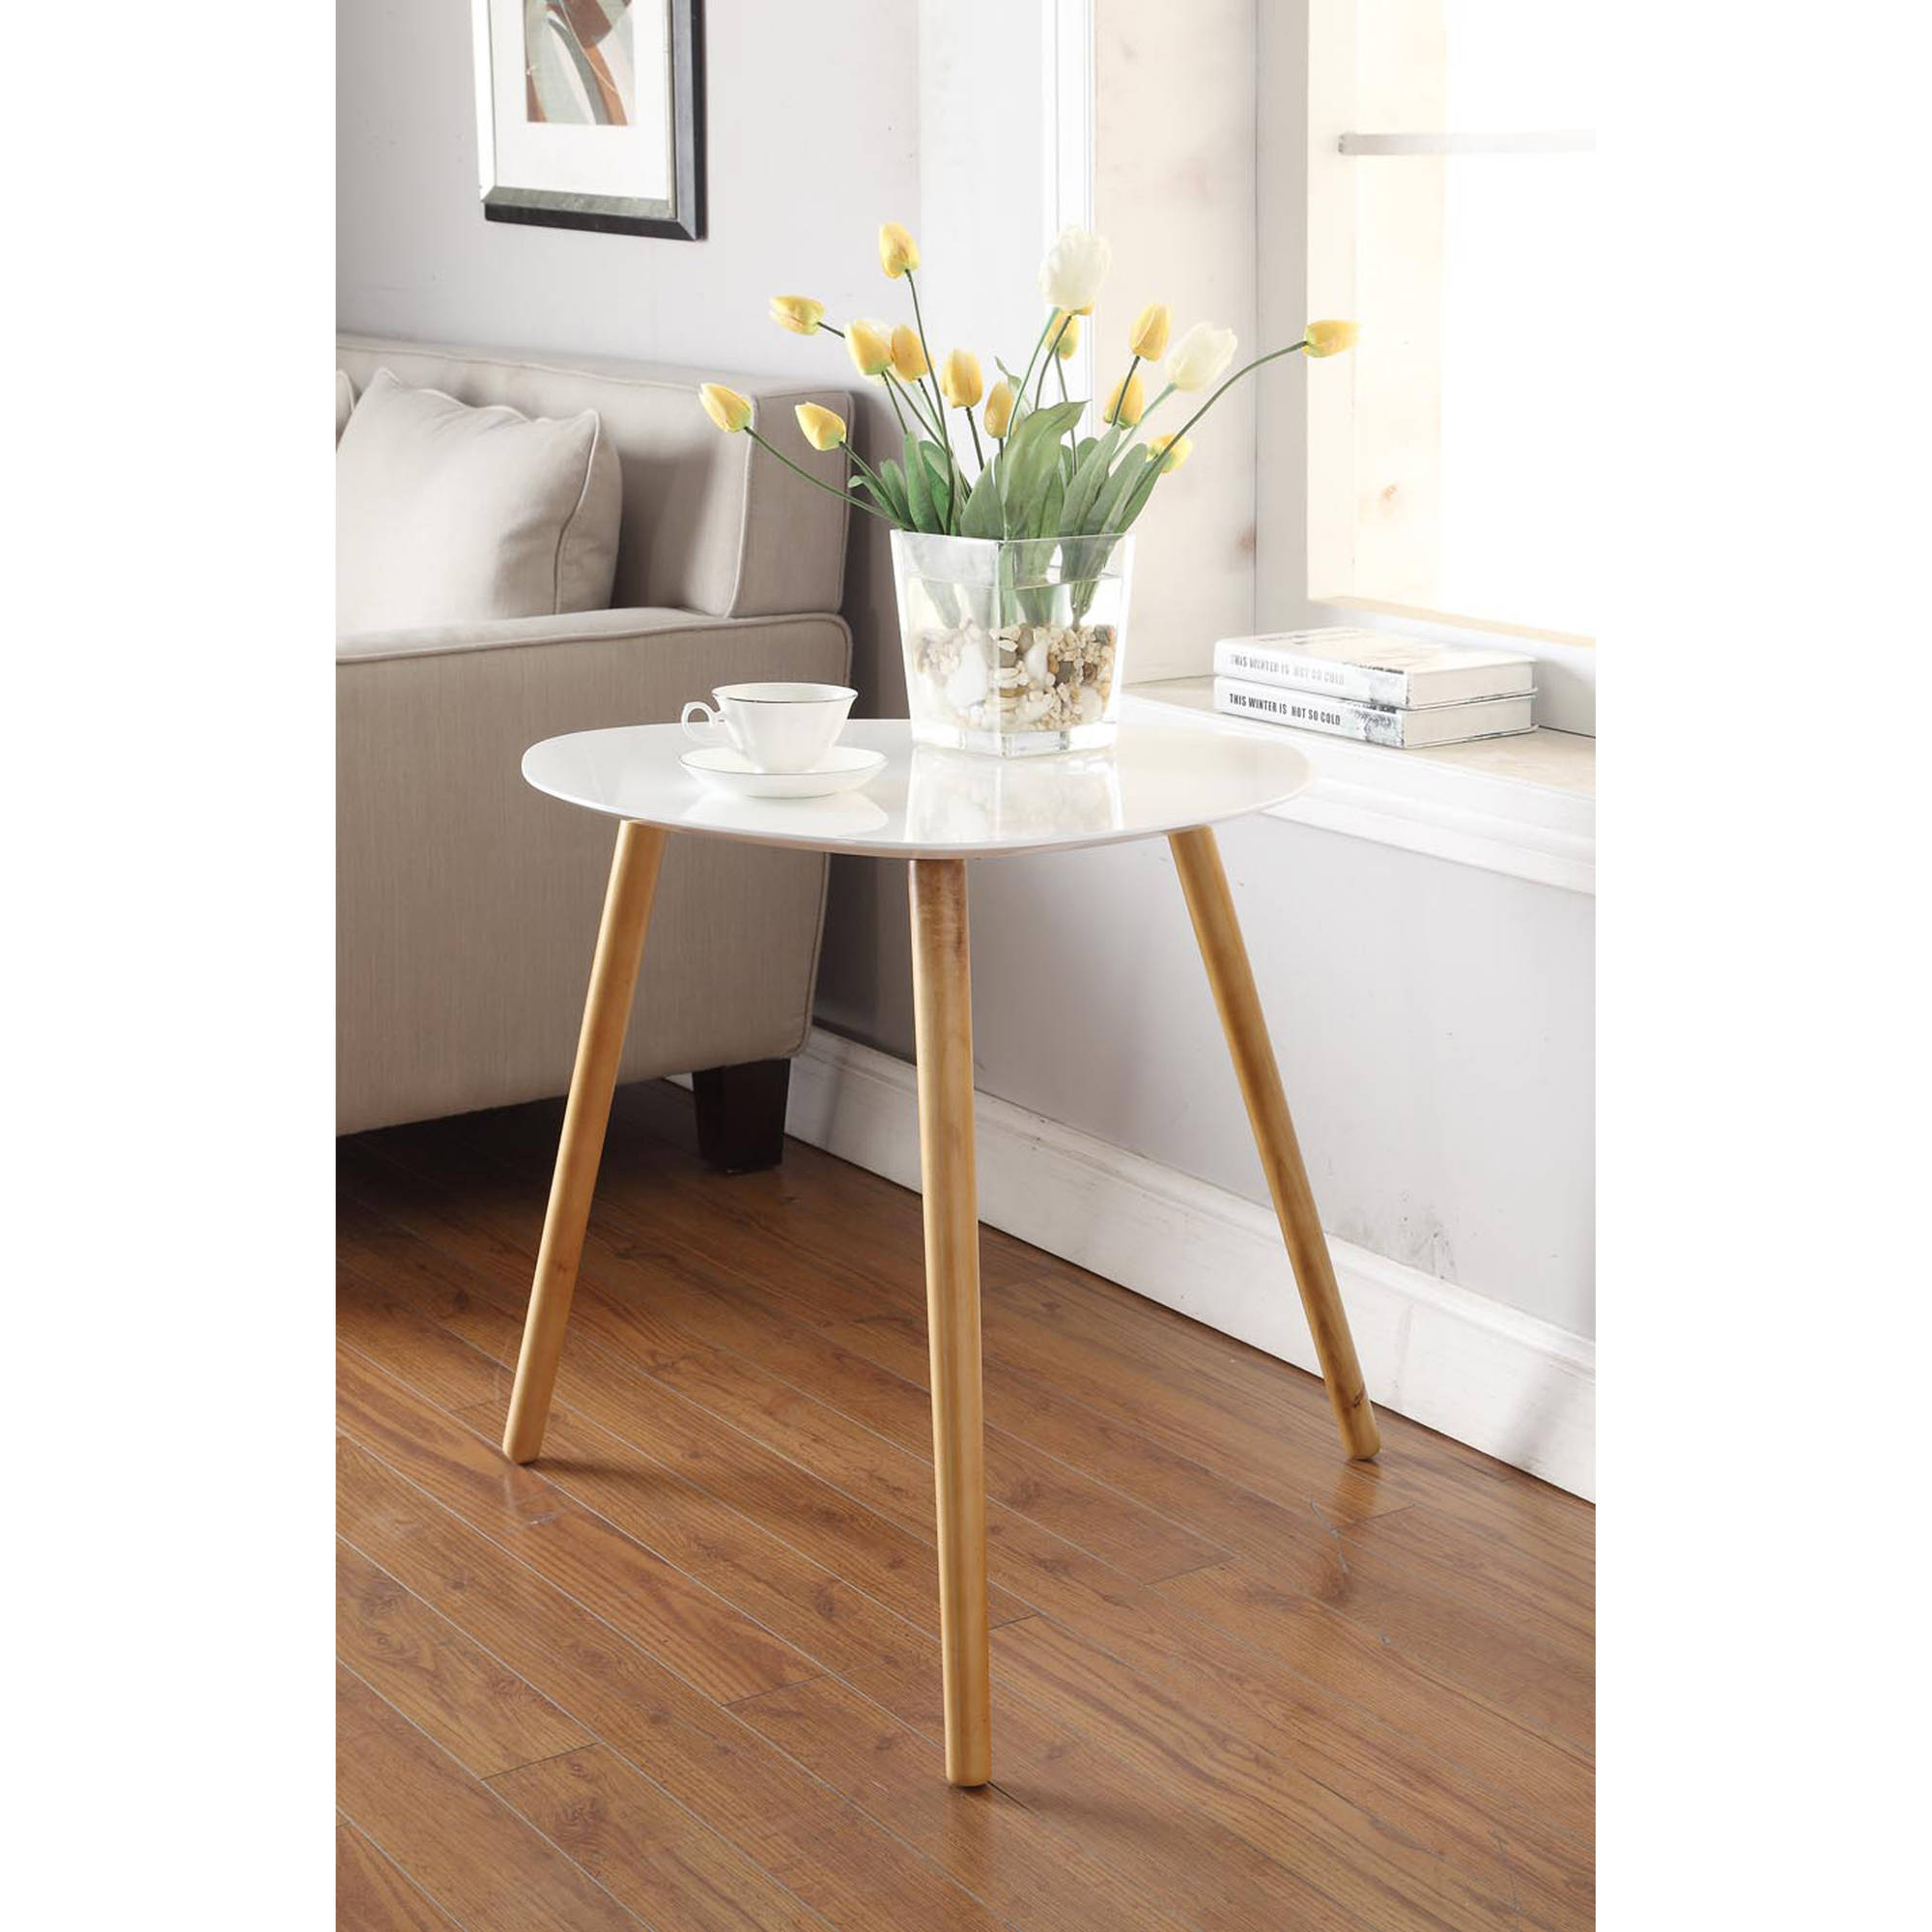 Convenience Concepts No Tools Oslo End Table, Multiple Colors by Convenience Concepts